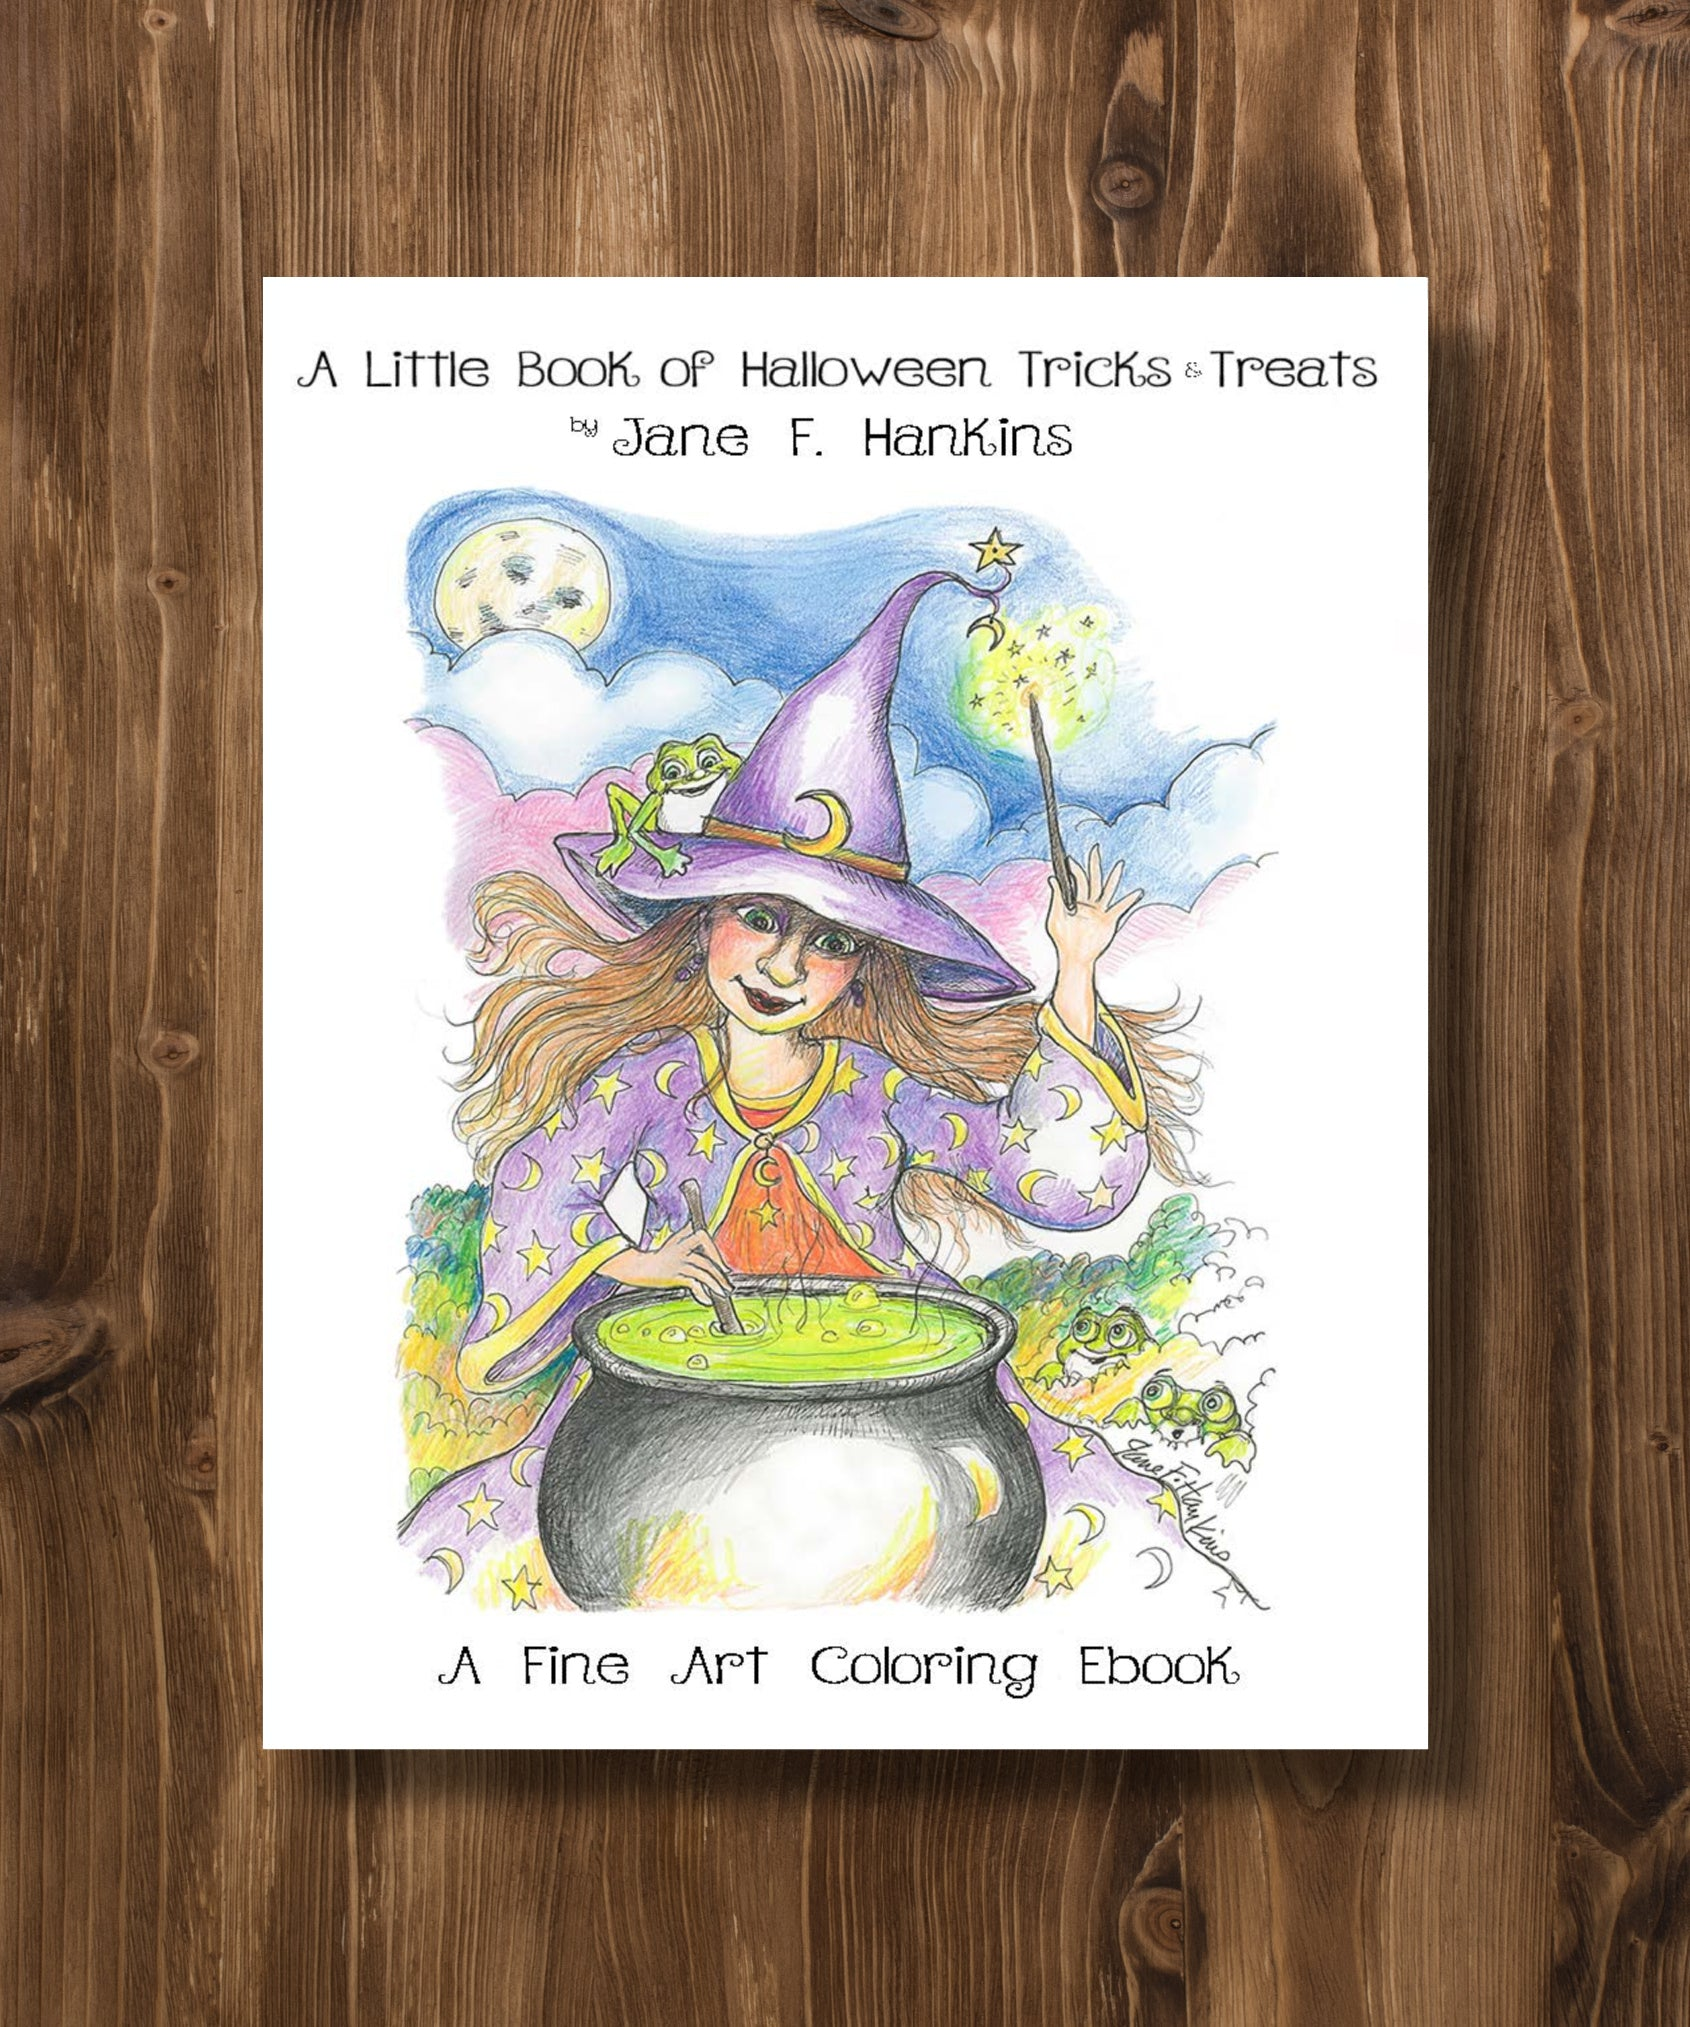 A Little Book of Halloween Tricks and Treats (Digital PDF)